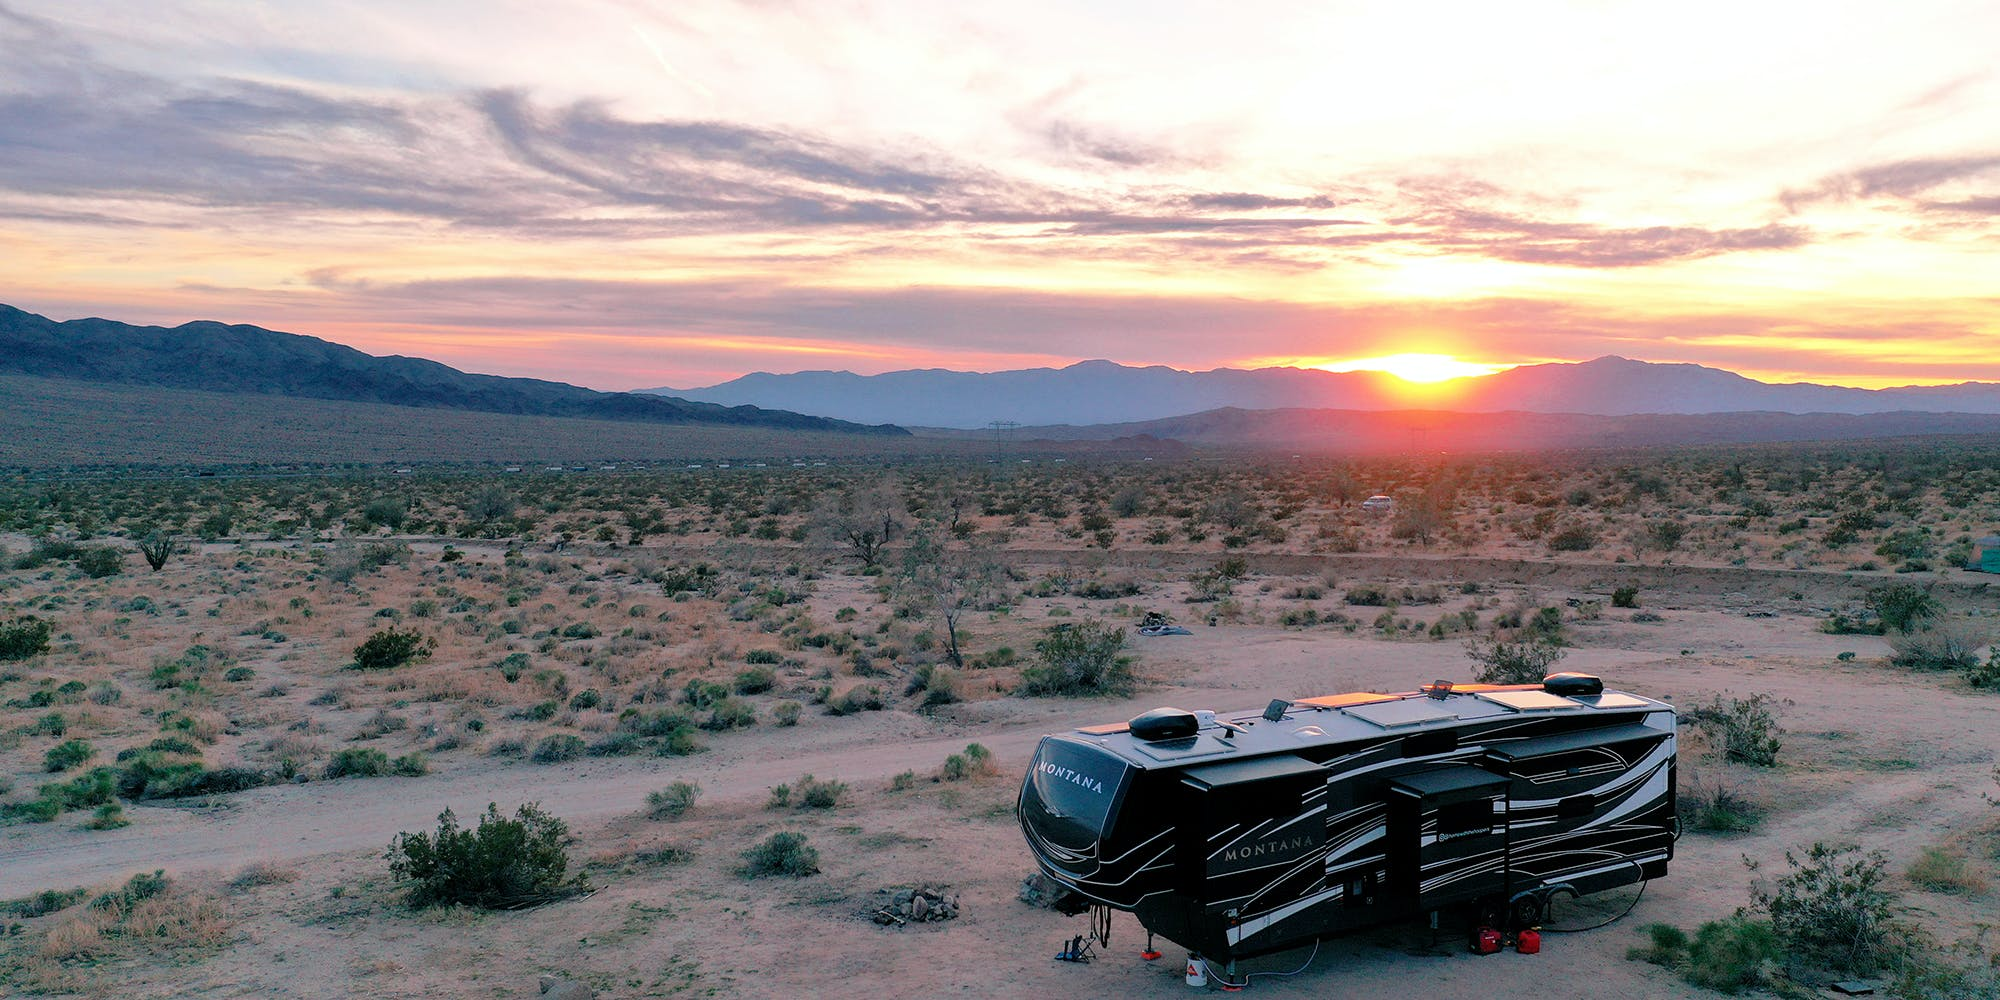 A fifth wheel parked in the desert with a beautiful orange and pink sunset in the background.